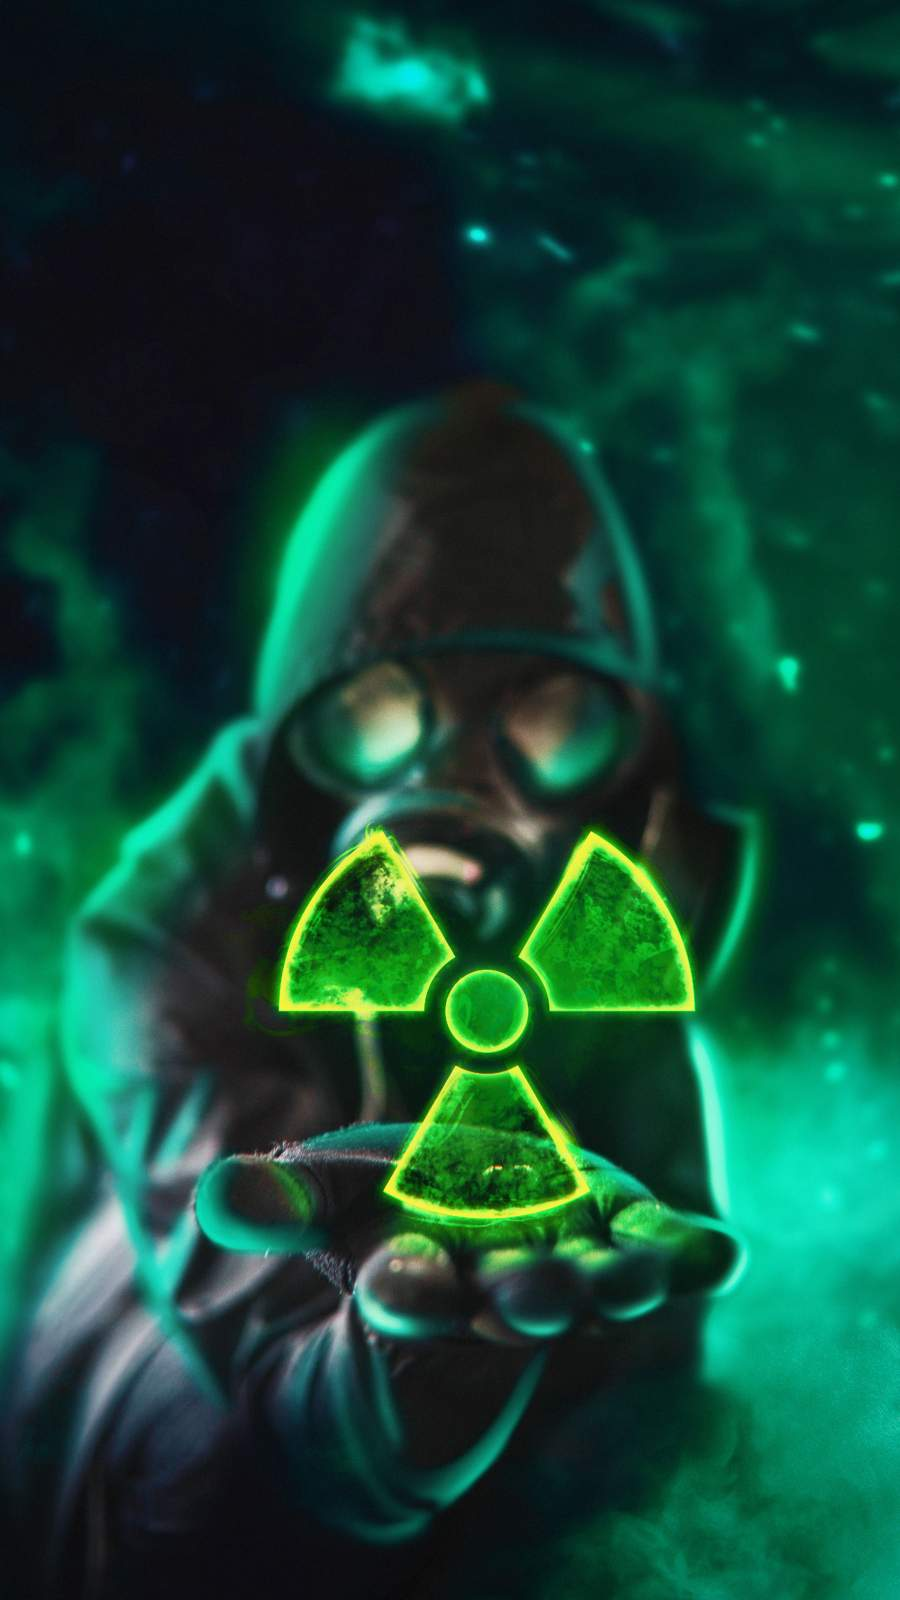 Nuclear Dangerous iPhone Wallpaper